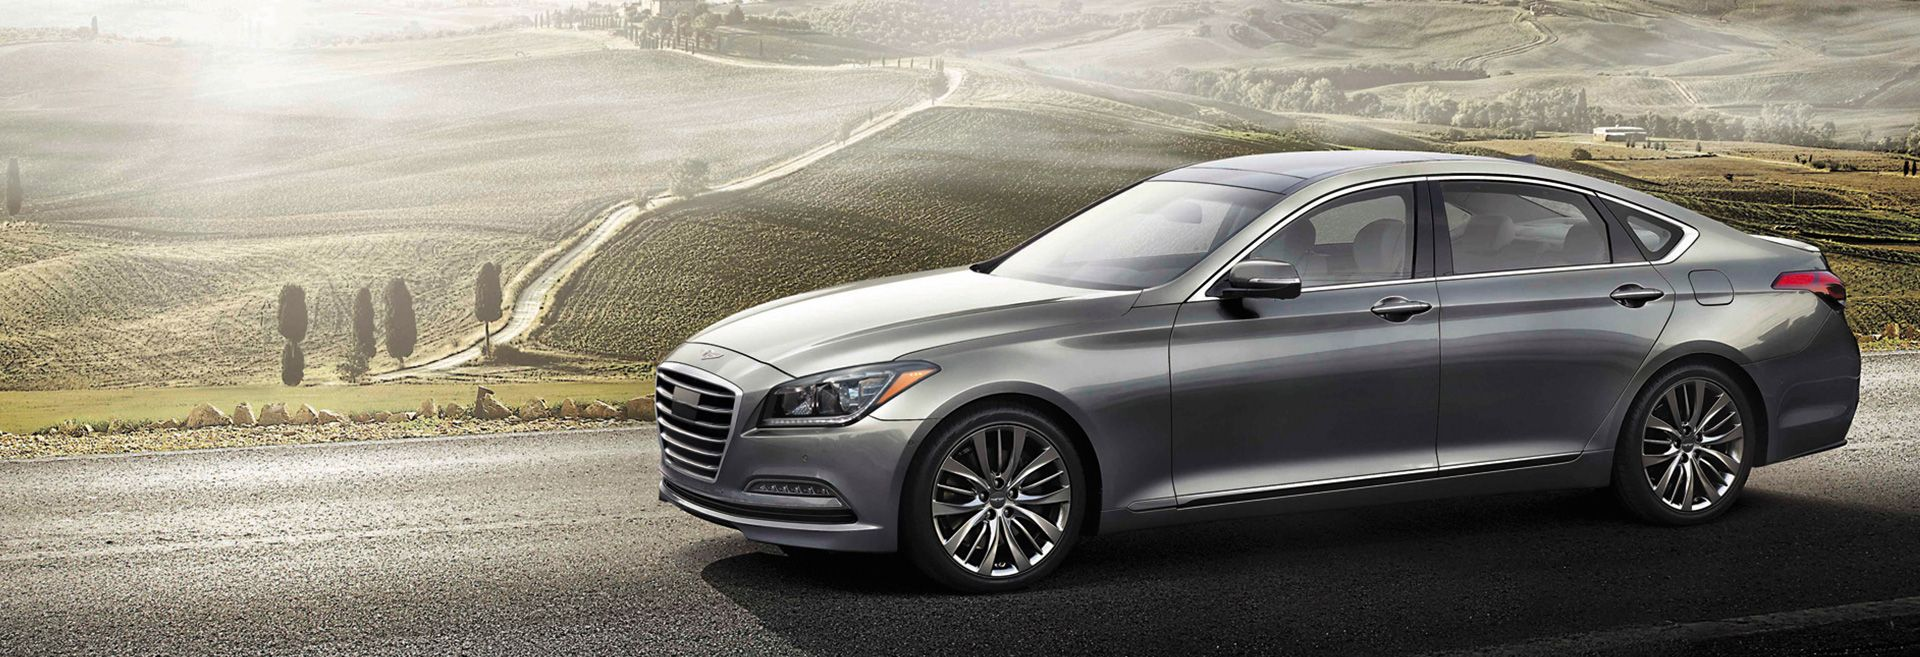 2017 Genesis G80 for Sale near Fairfax, VA